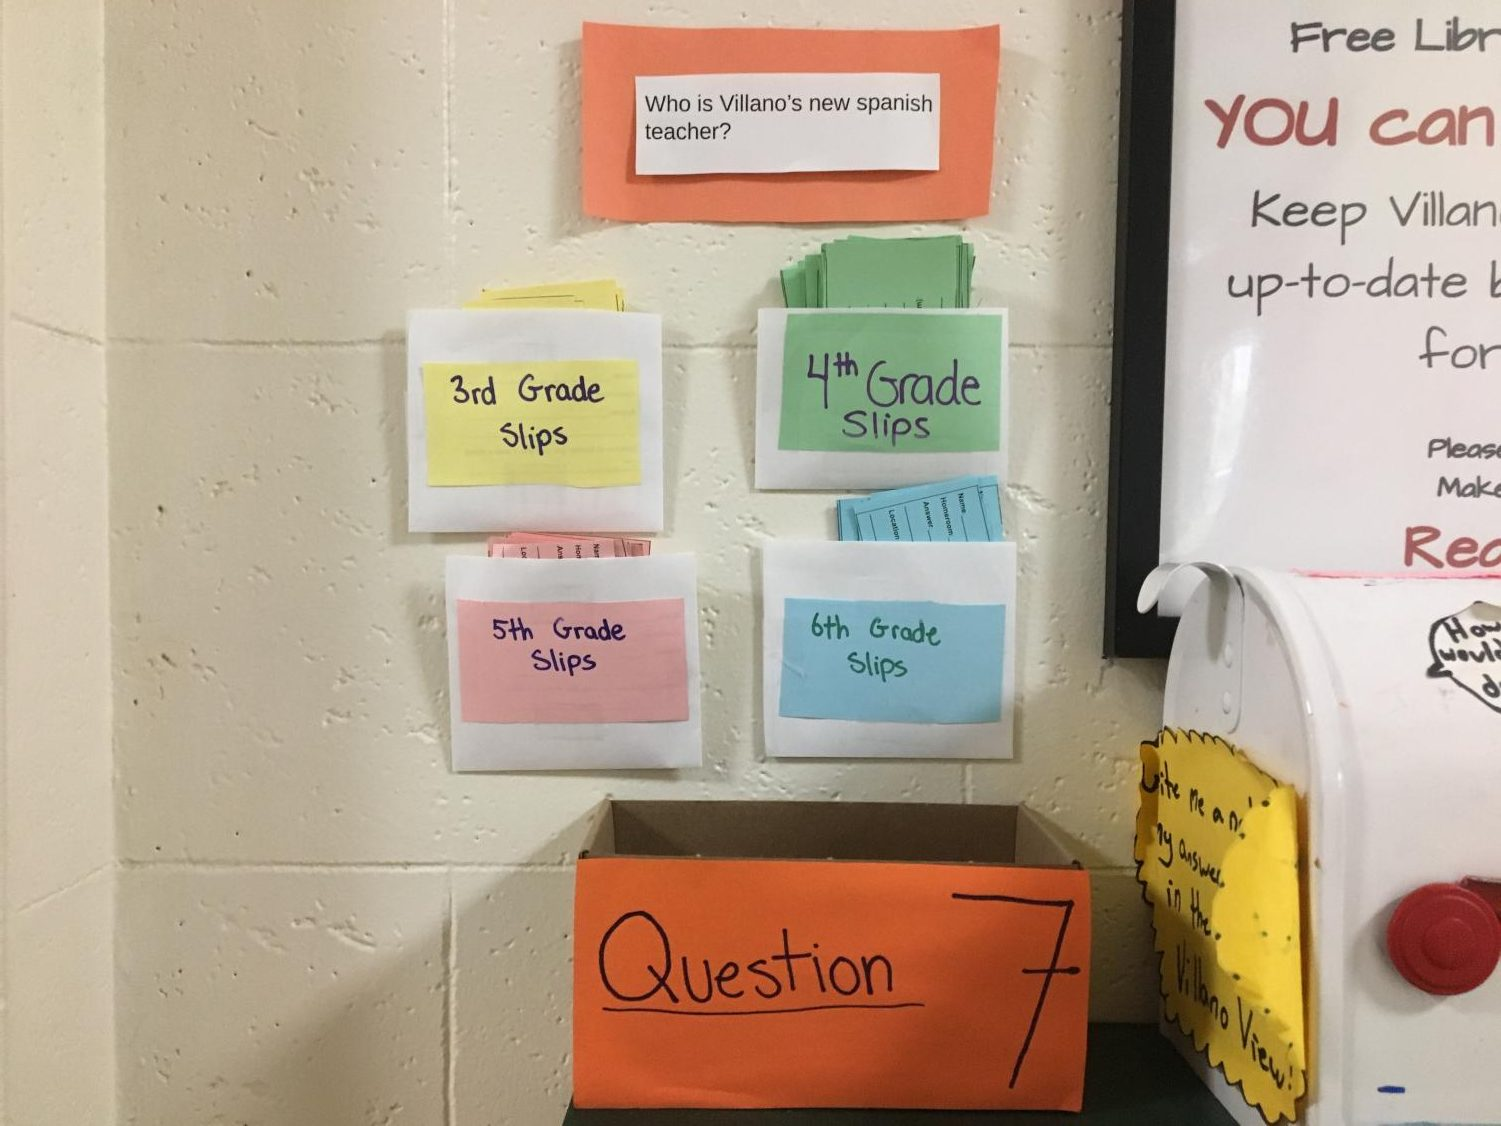 Questions+are+color-coded+based+on+grade+level%3A+yellow+is+third+grade%3B+green+is+fourth+grade%3B+pink+is+fifth+grade%3B+blue+is+sixth+grade.